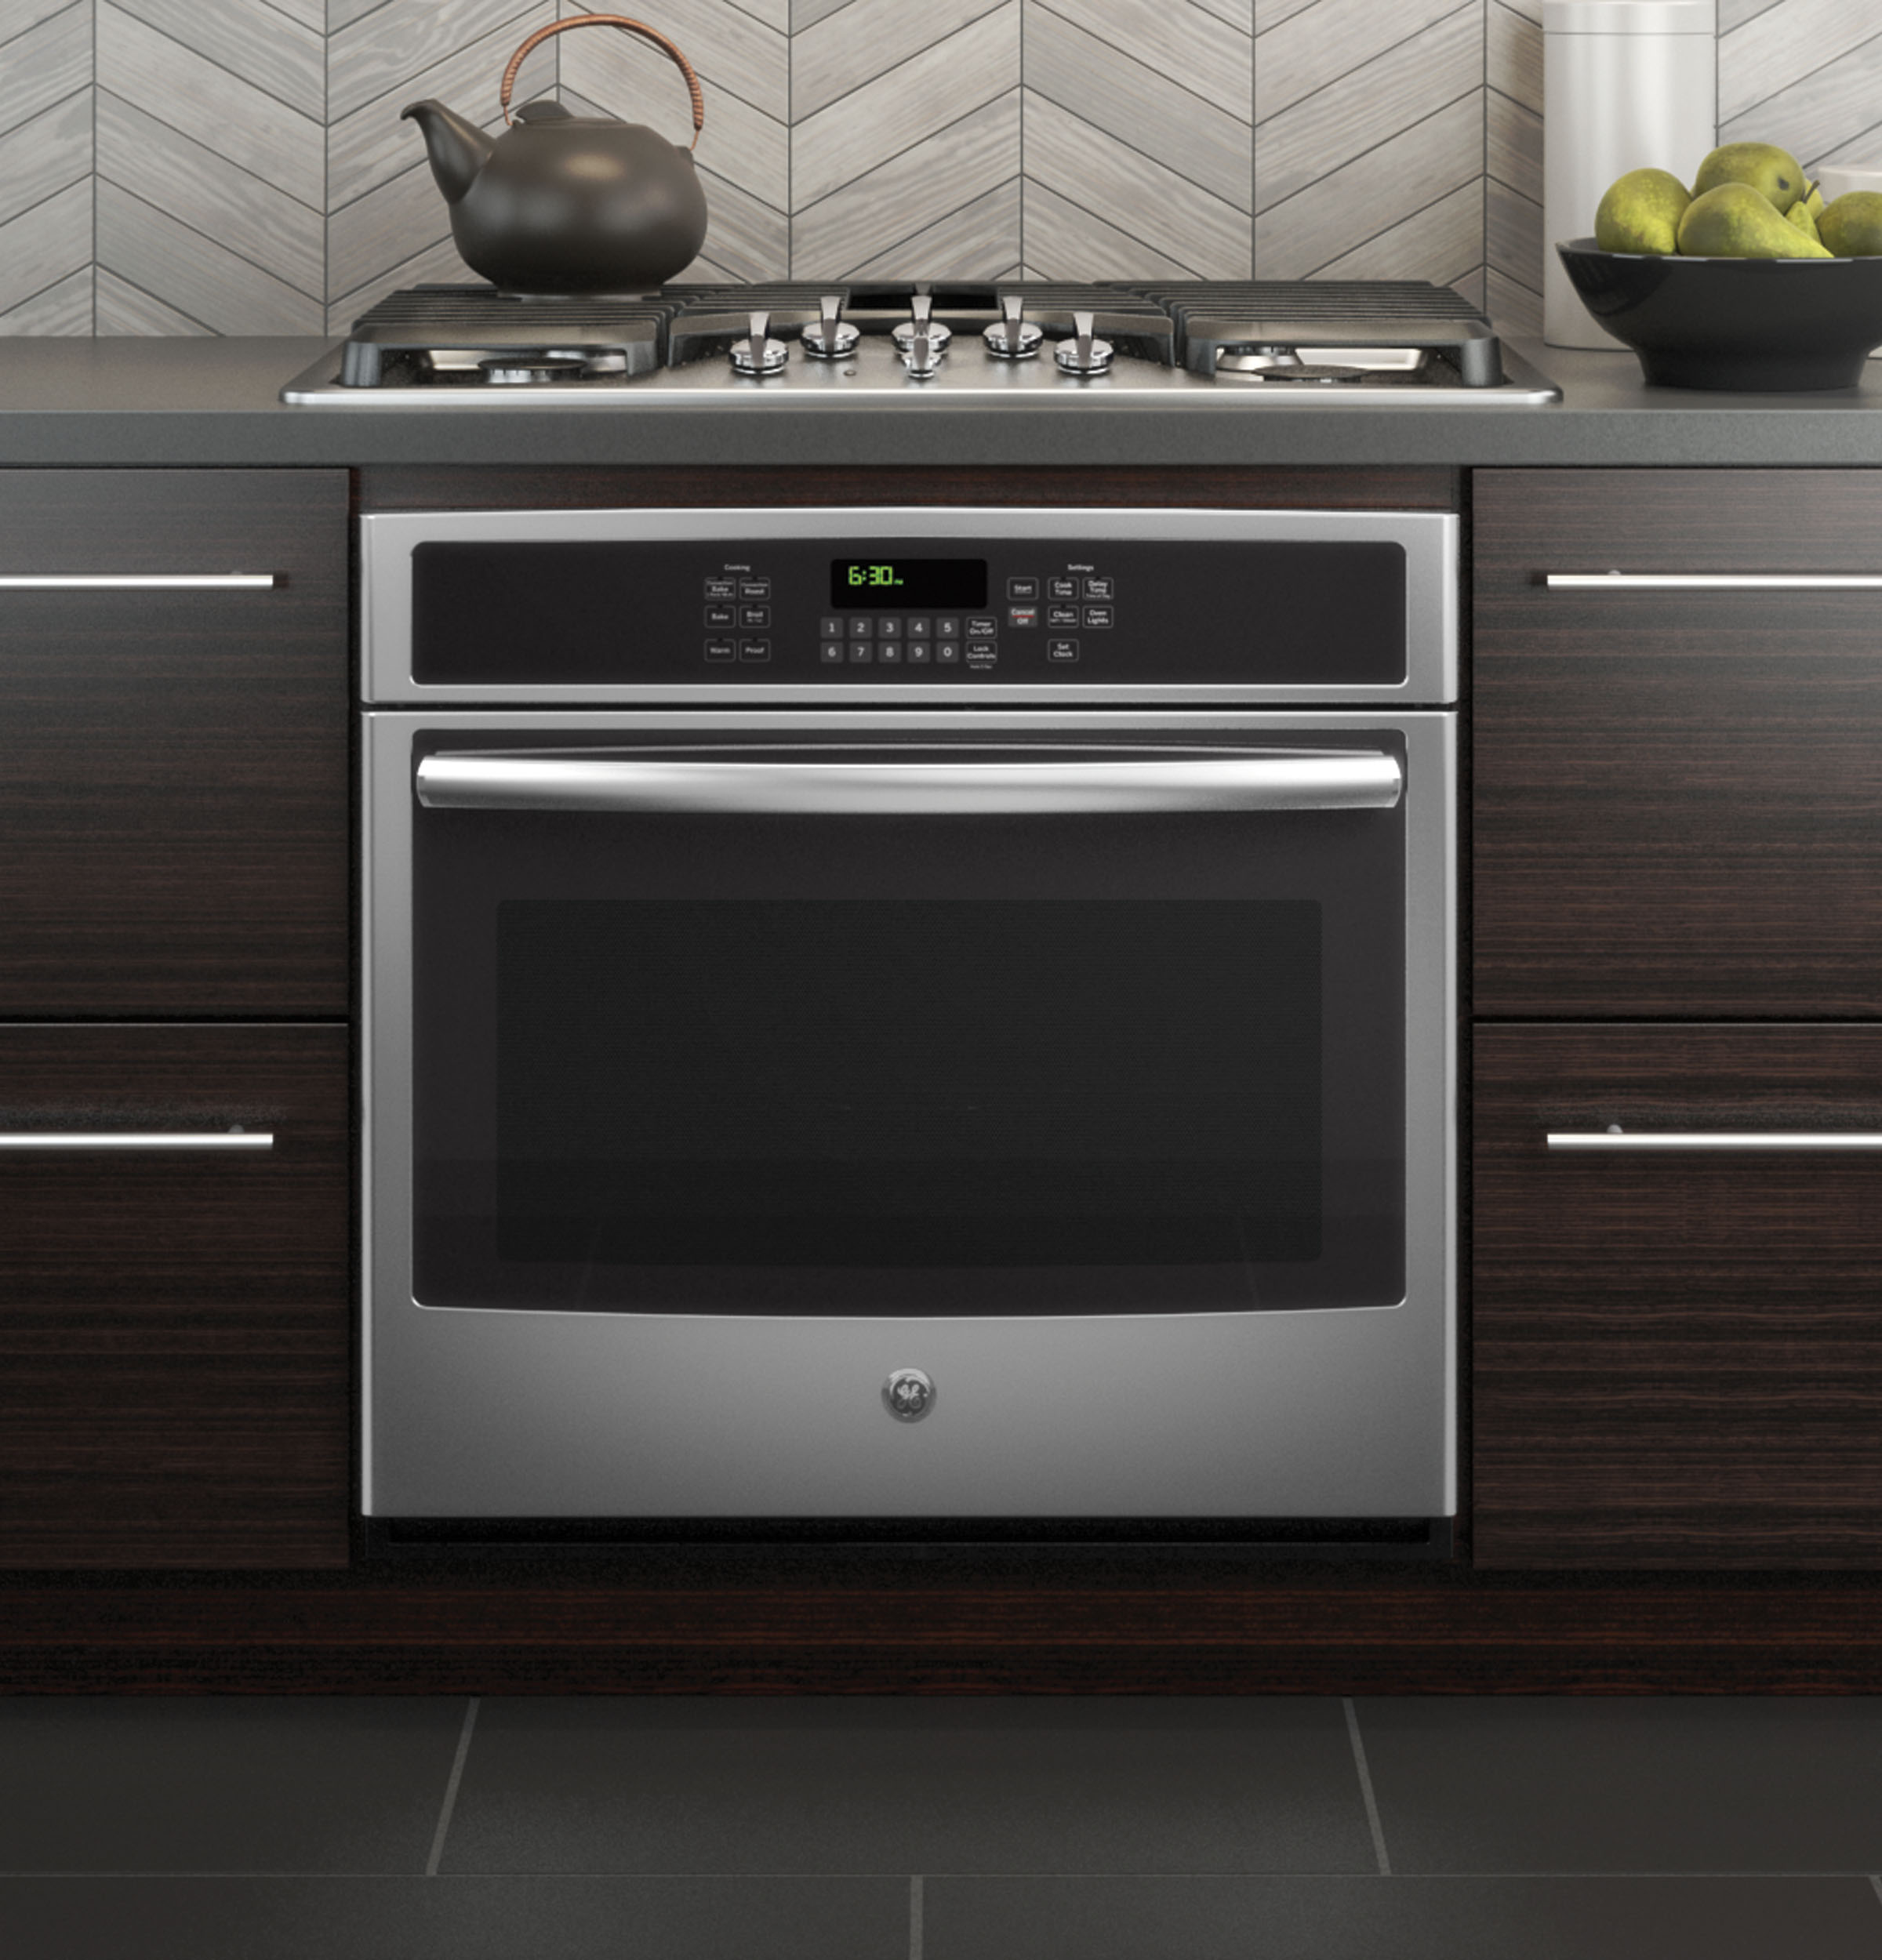 Wall Oven Cabinets: Arizona Wholesale Supply